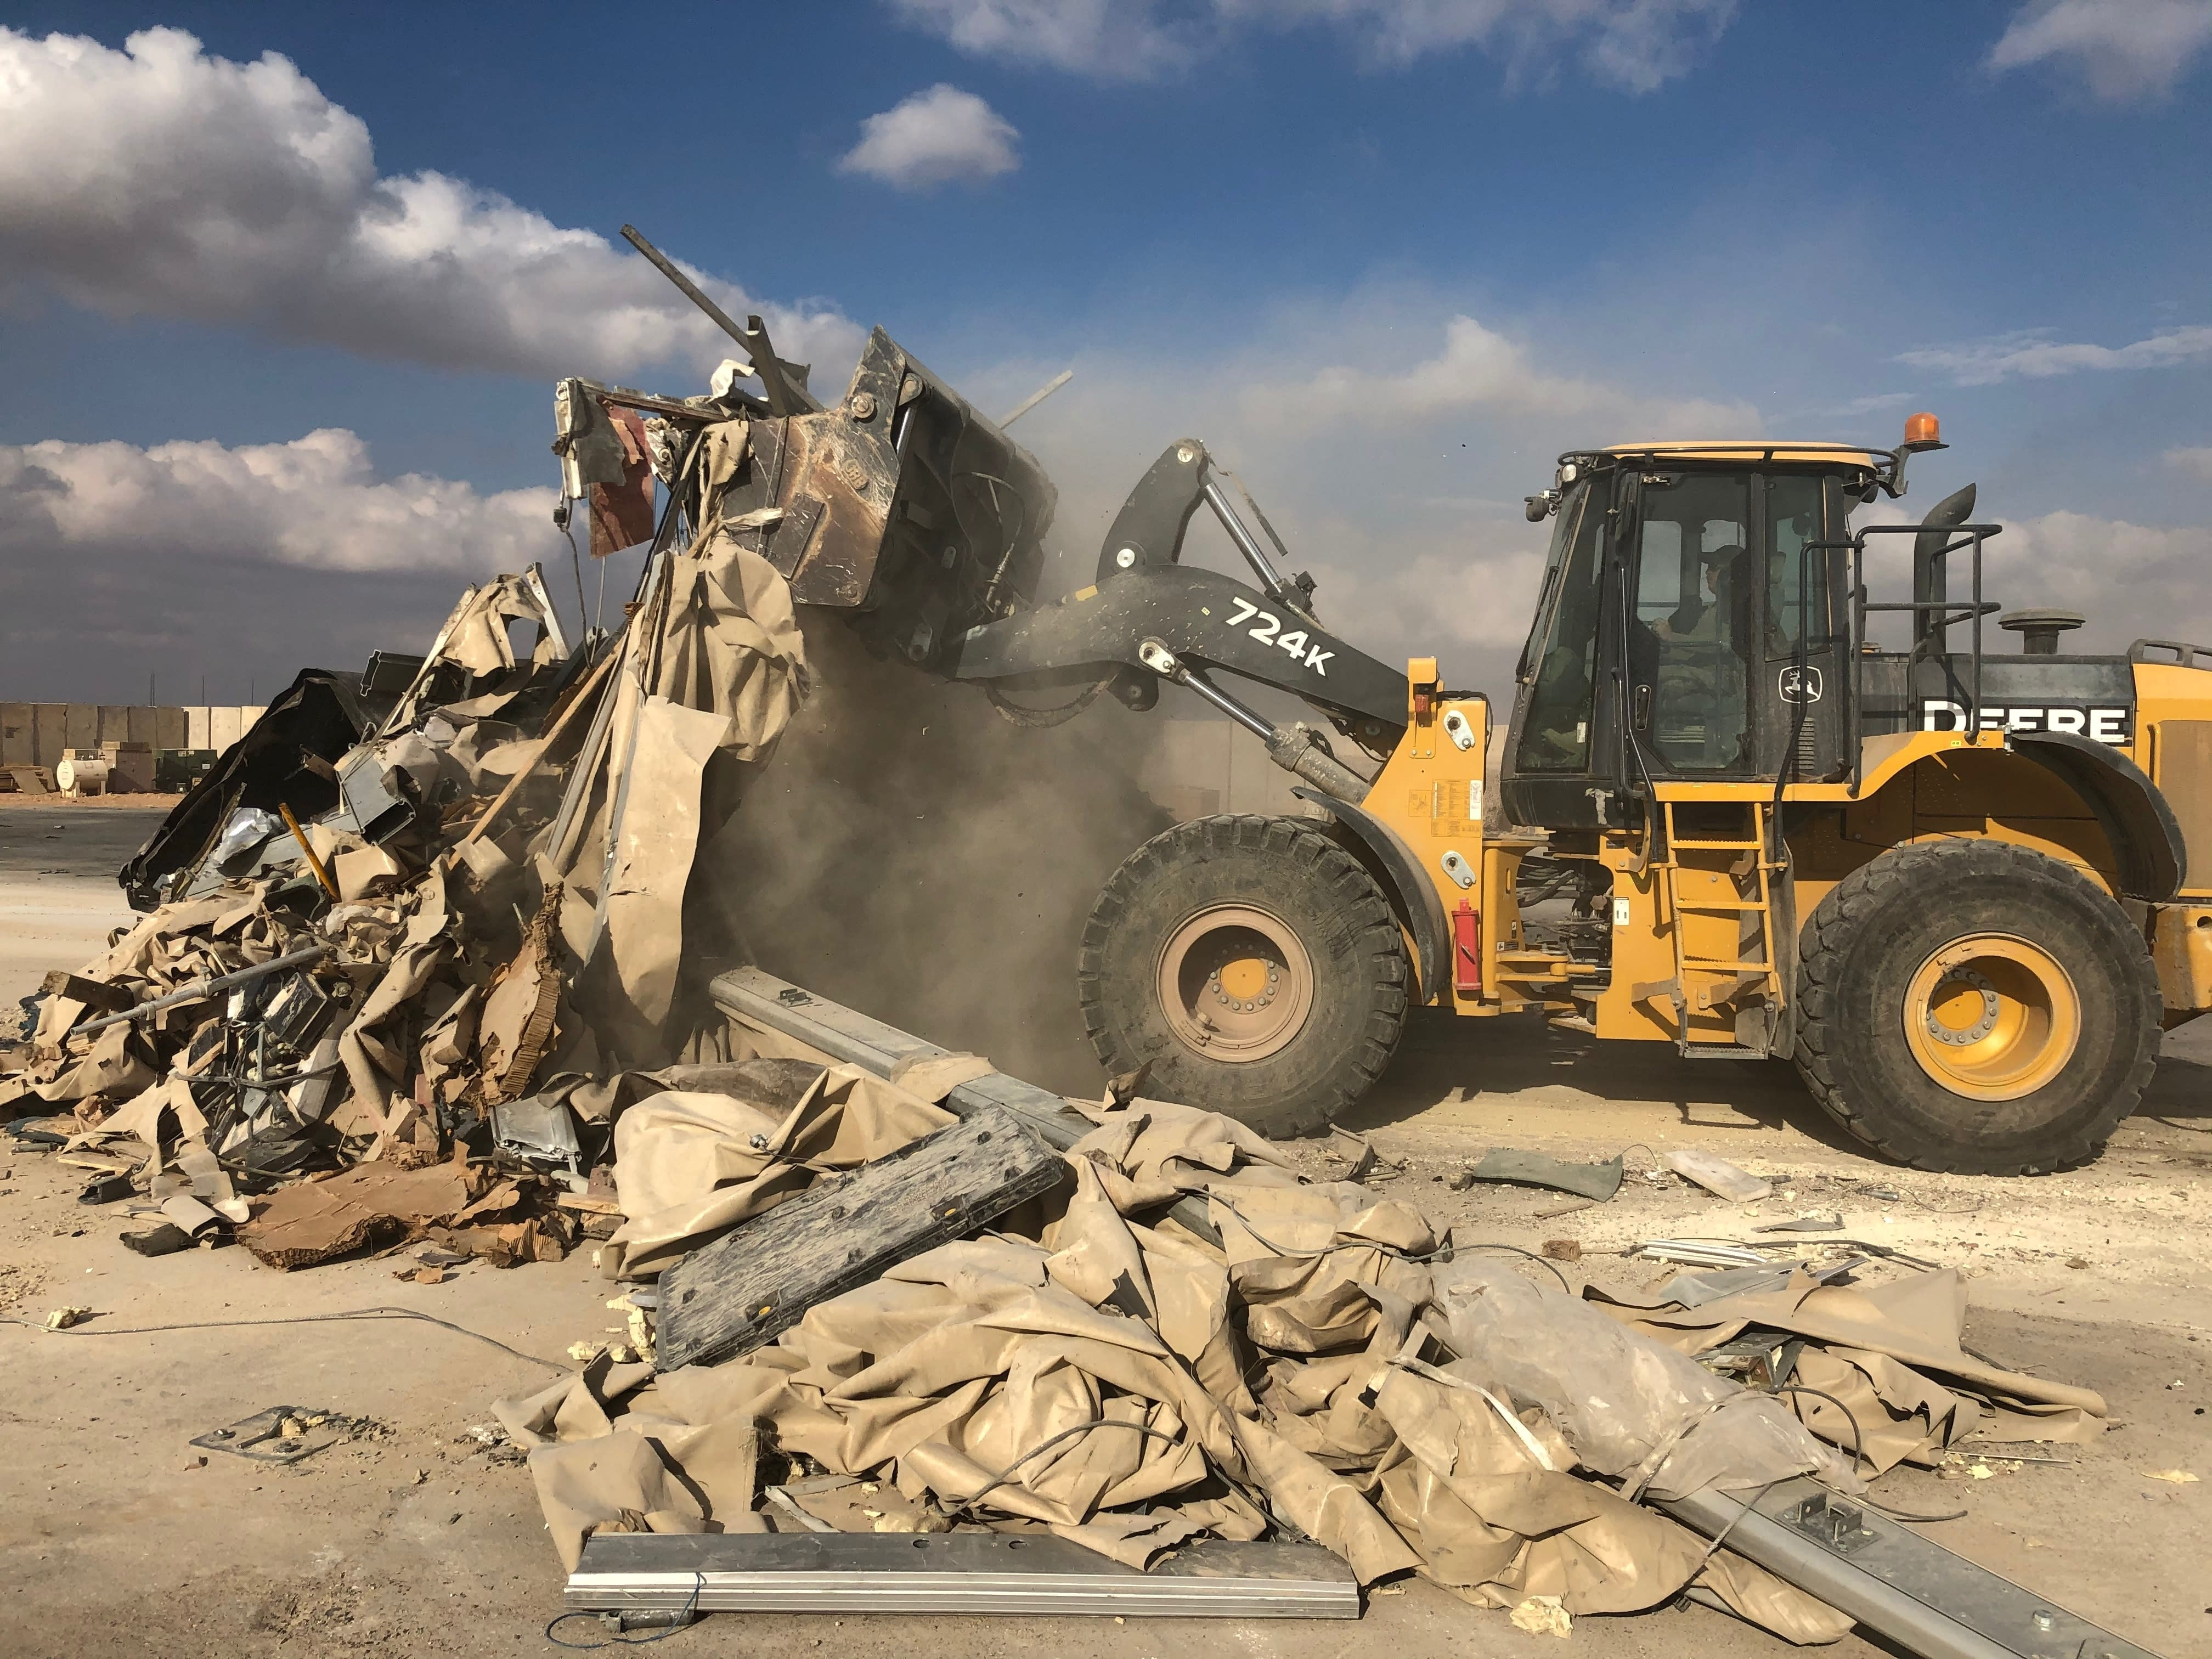 A bulldozer clears rubble and debris at Ain al-Asad air base in Anbar, Iraq, Monday, Jan. 13, 2020. Ain al-Asad air base was struck by a barrage of Iranian missiles in retaliation for the U.S. drone strike that killed atop Iranian commander, Gen. Qassem Soleimani, whose killing raised fears of a wider war in the Middle East. (AP Photo/Qassim Abdul-Zahra)